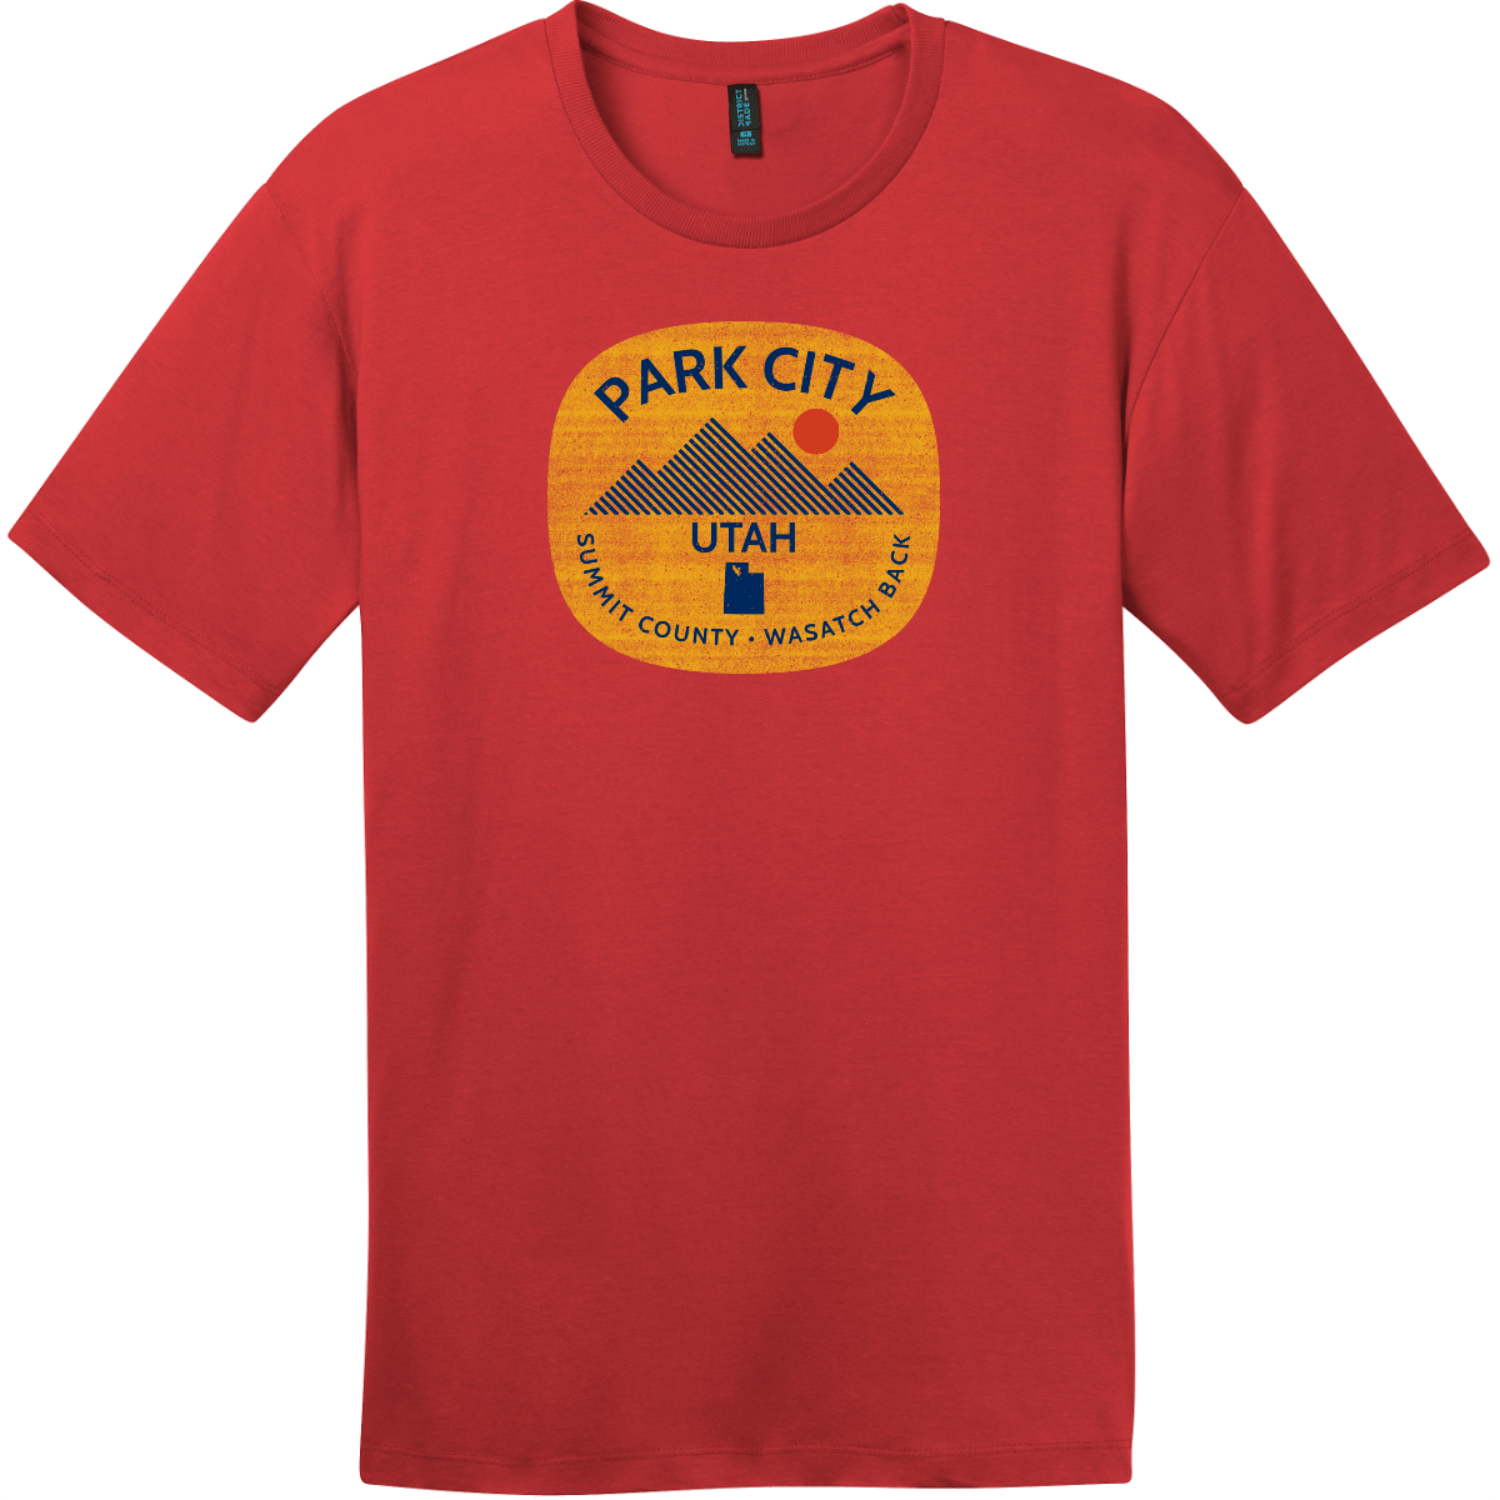 Park City Utah Wasatch Back T-Shirt Classic Red District Perfect Weight Tee DT104